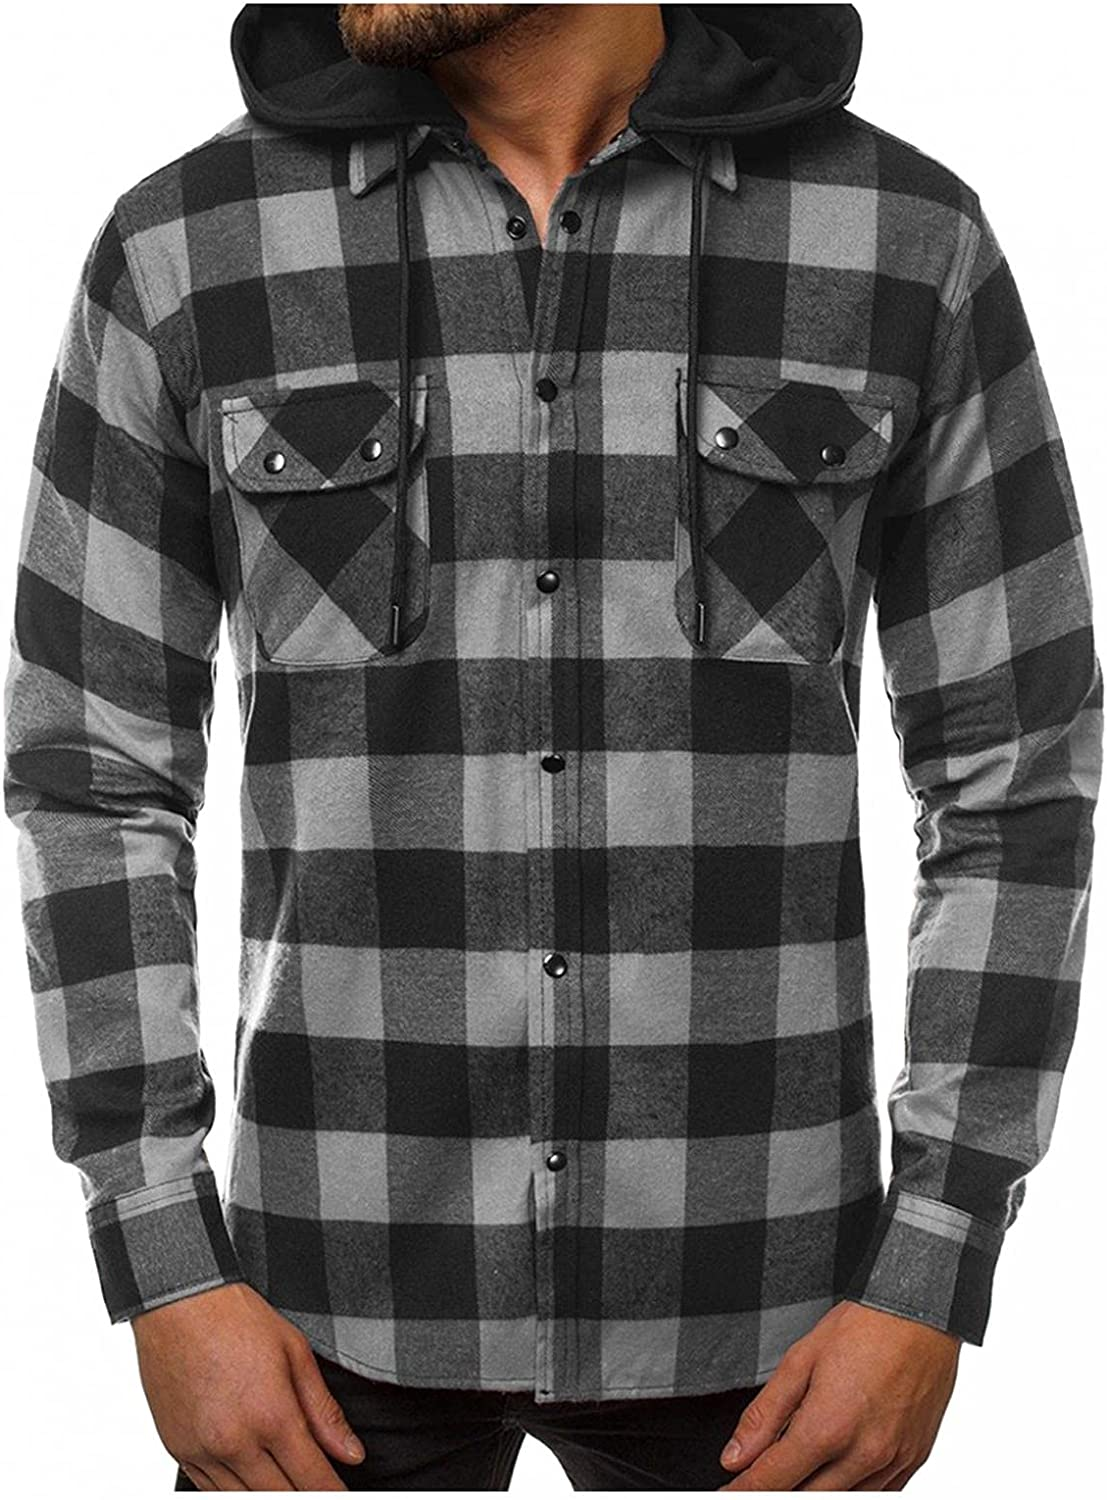 KEEYO Mens Long Sleeve Hoodie Plaid Flannel Shirts Casual Lightweight Button Down Classic Hooded Jackets Outwear